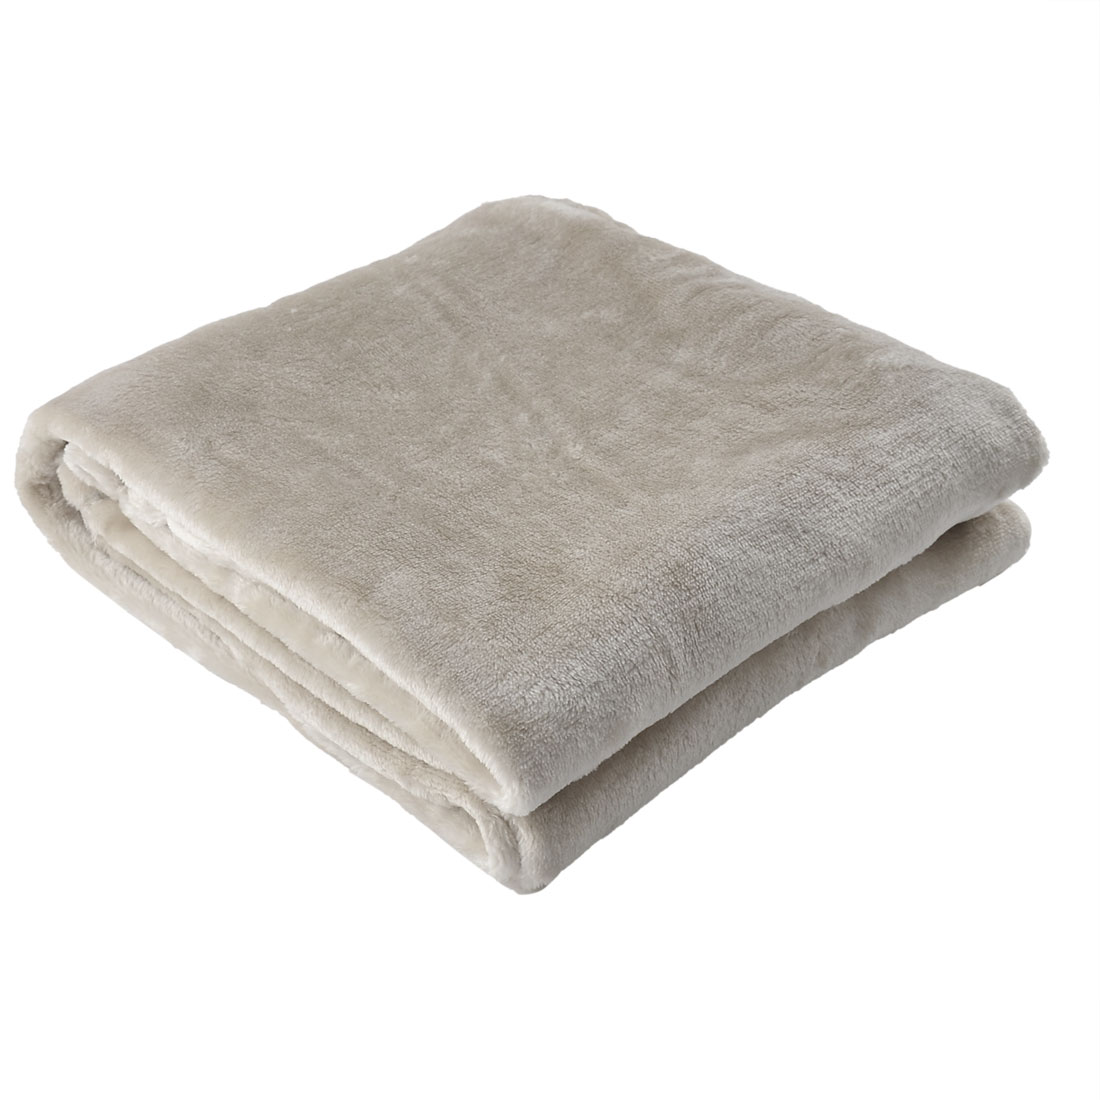 Home Bedroom Warm Soft Throw Pure Blanket Rug Bed Quilt Sofa Beige